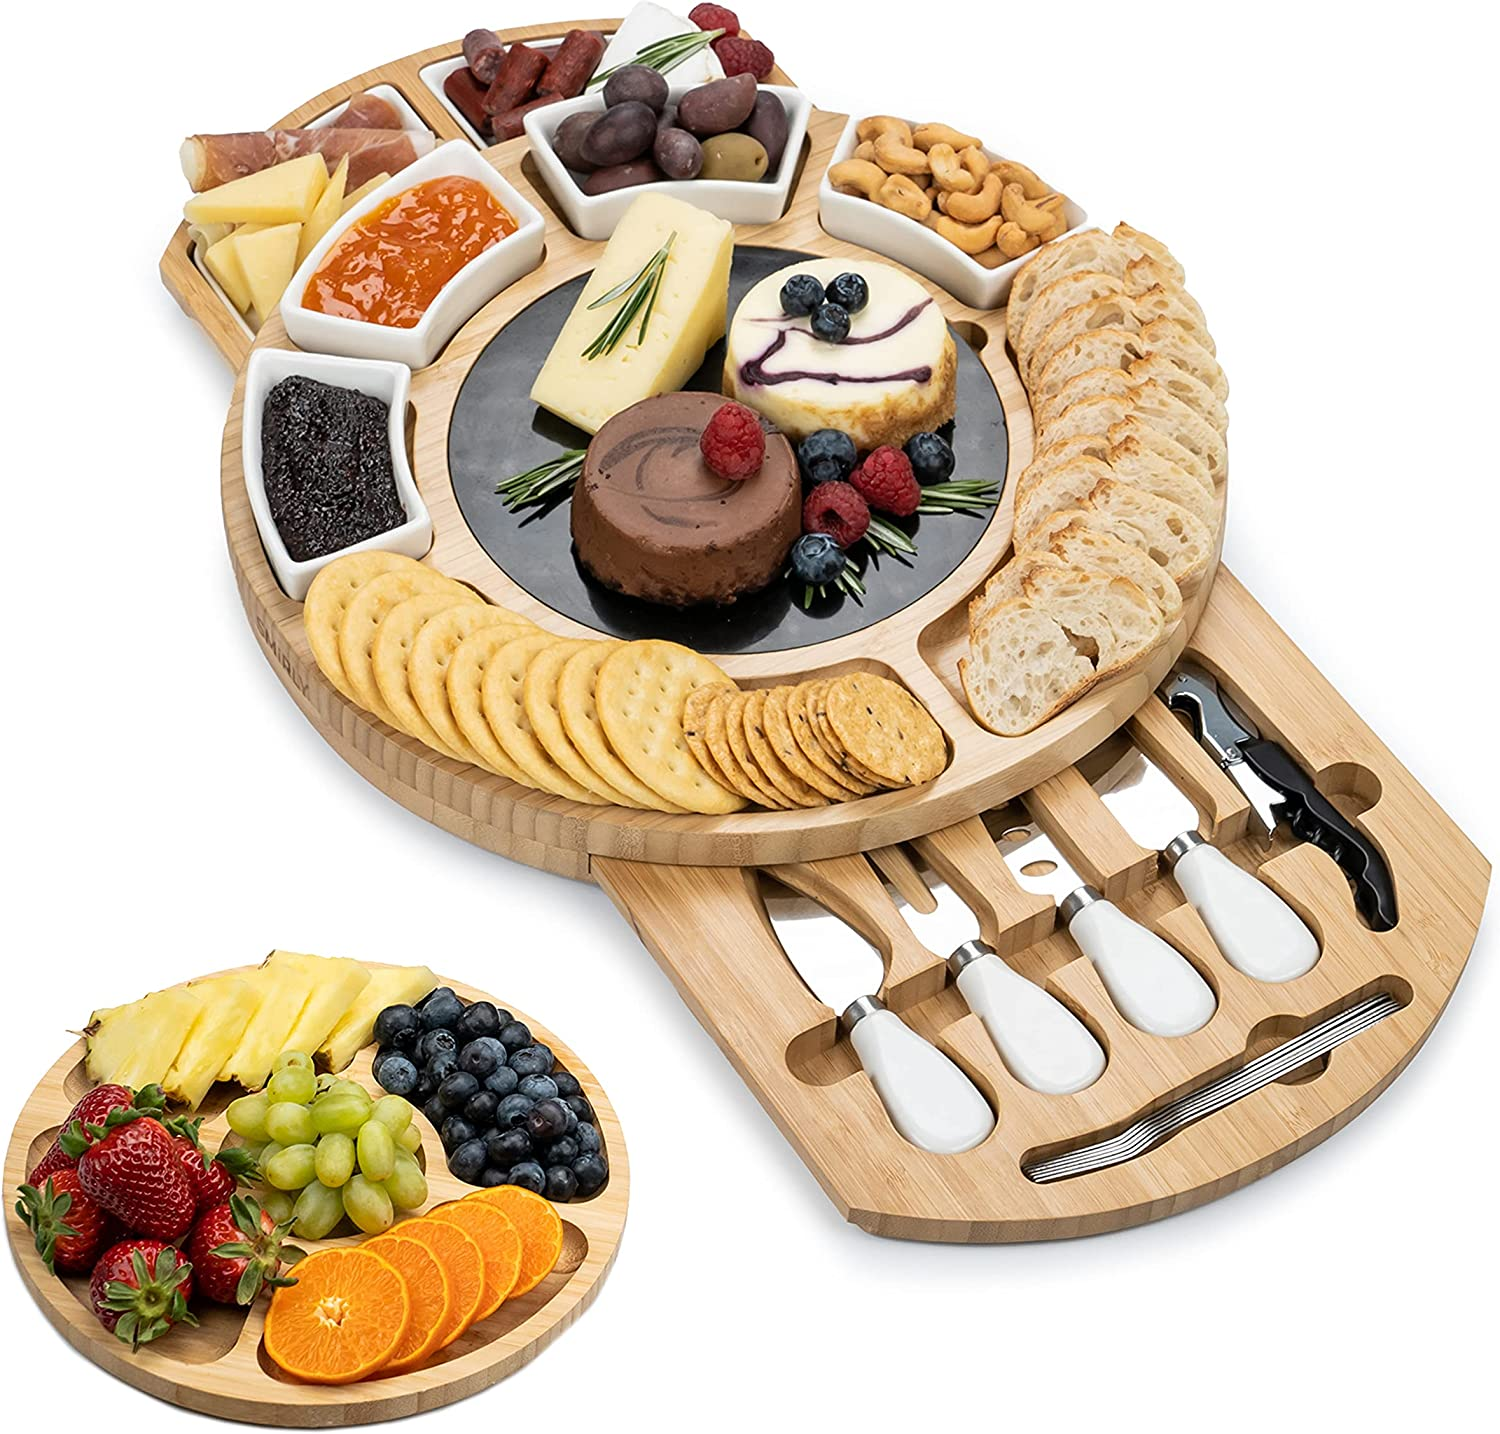 Max 62% OFF SMIRLY Cheese Board and Knife Set Large Round Charcuterie Boar - Sale Special Price